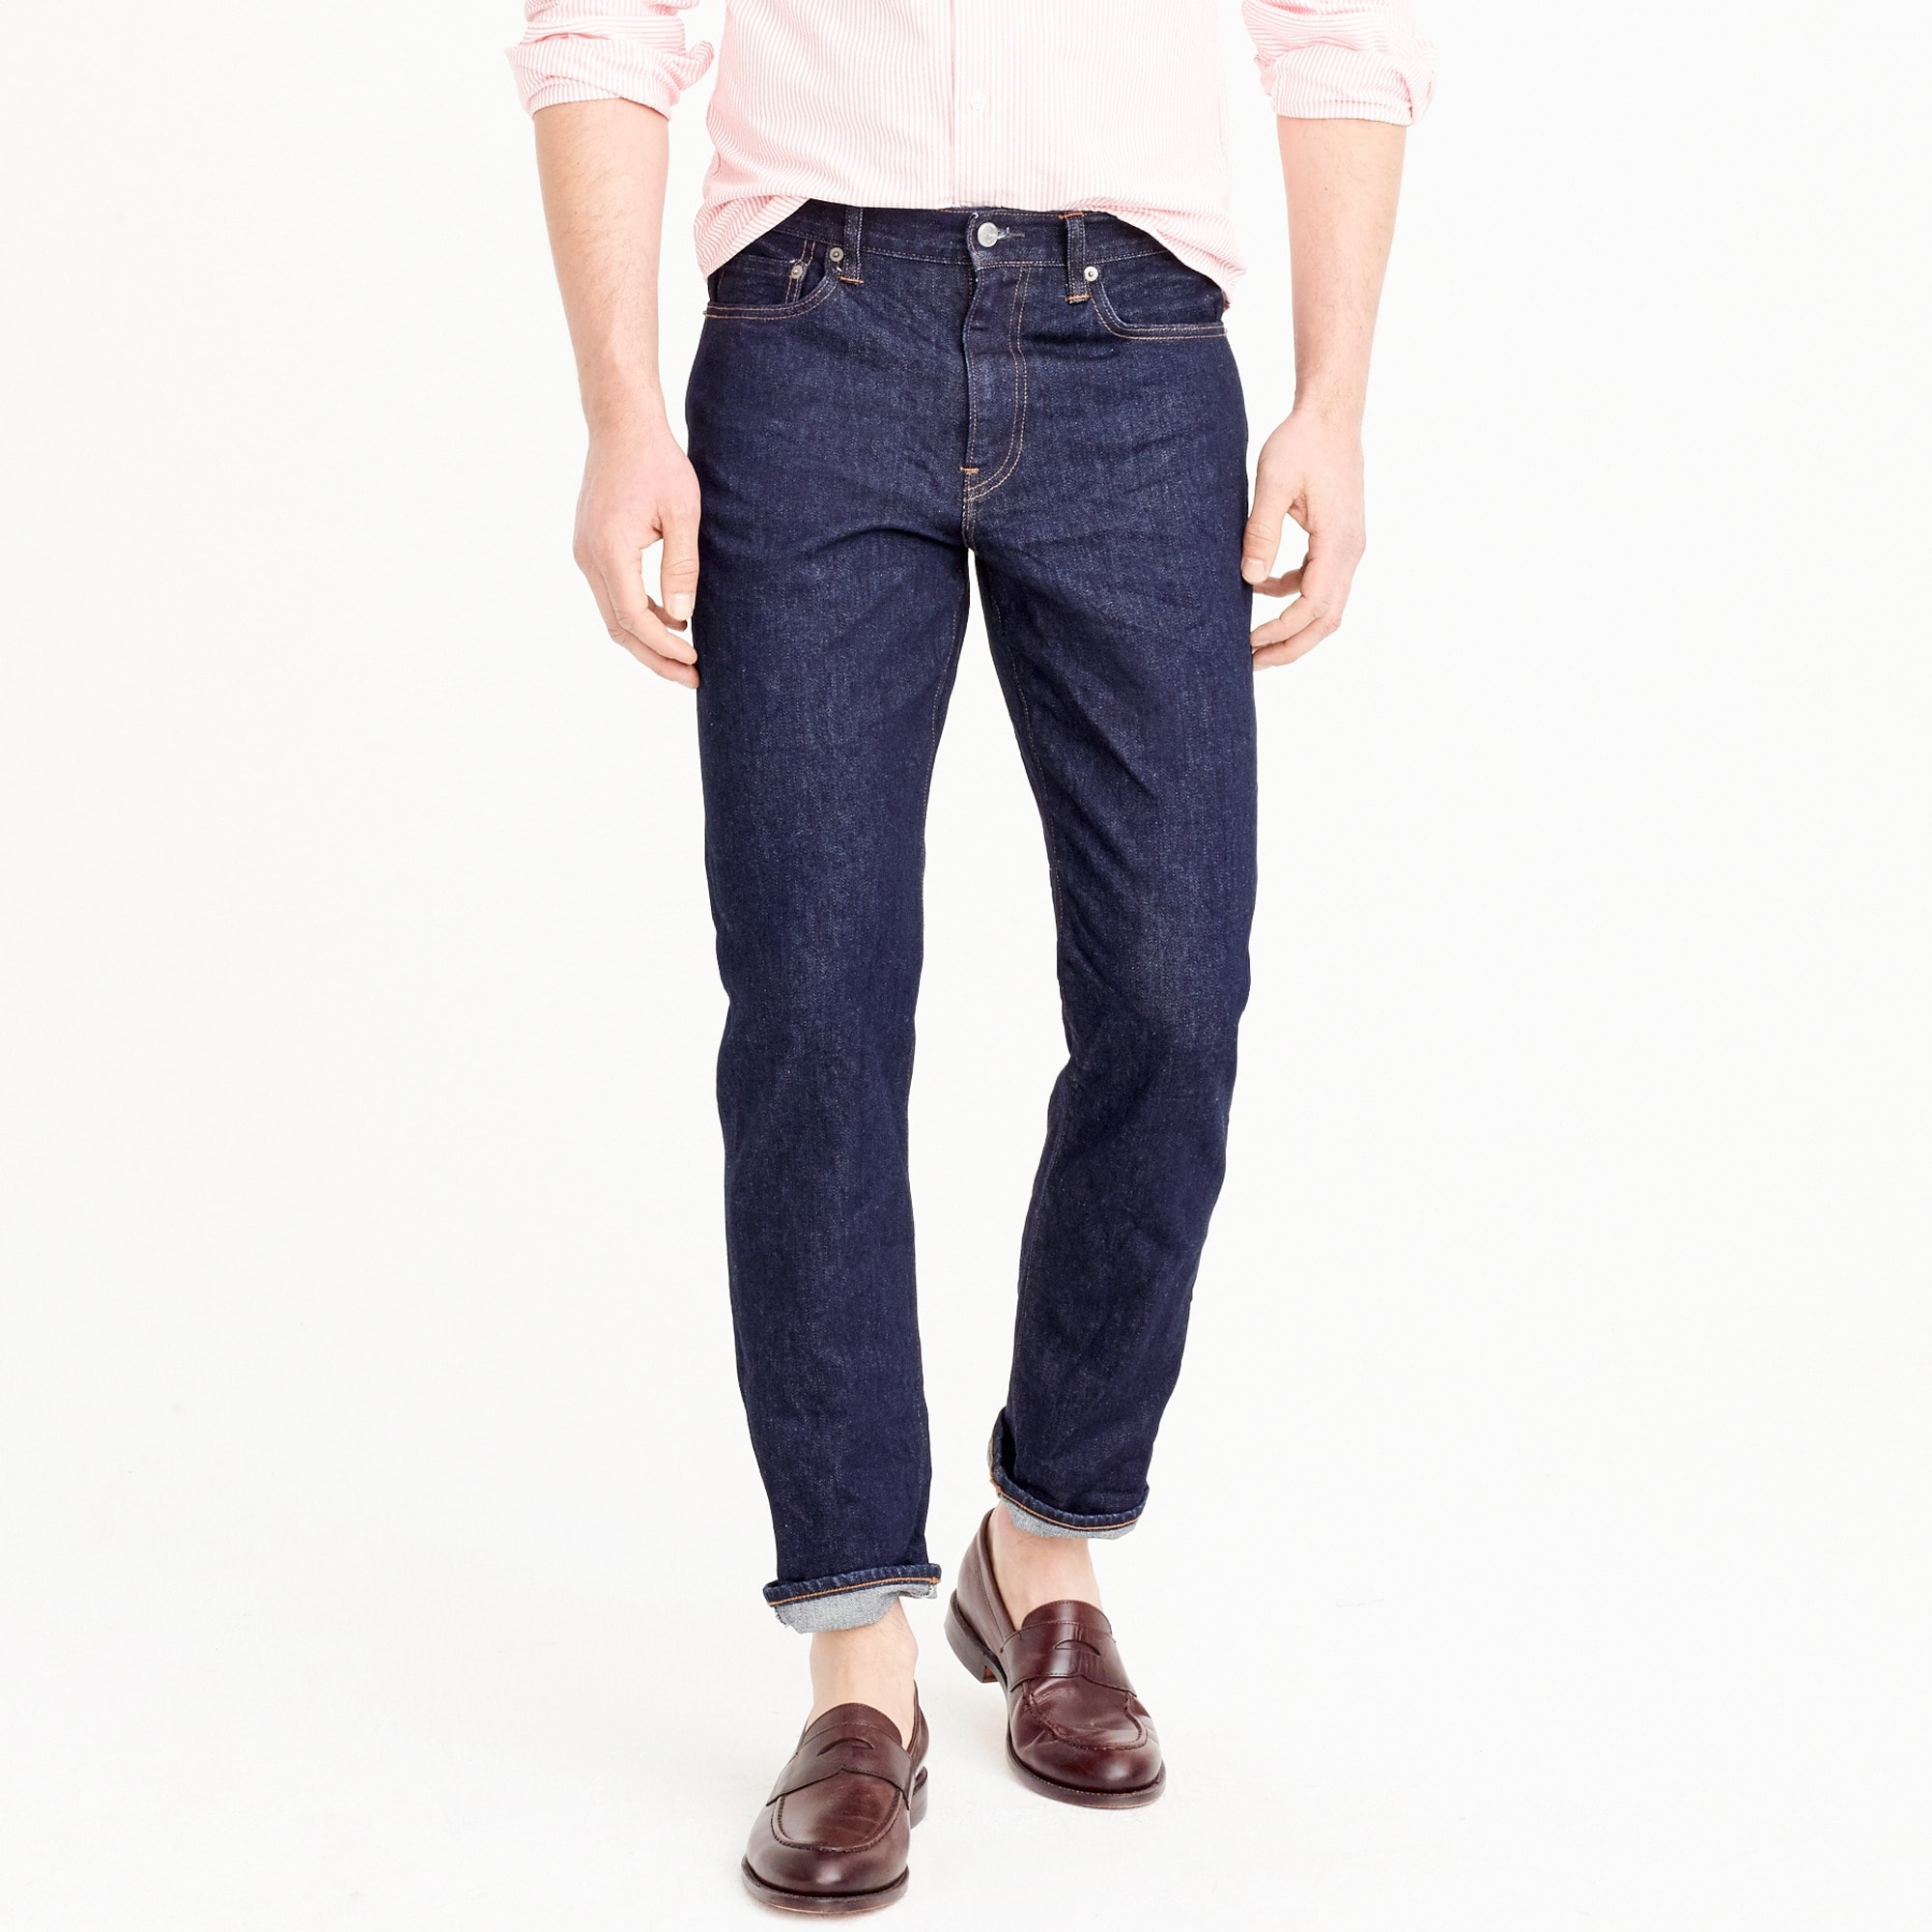 770 Straight-fit stretch jean in indigo men pants c